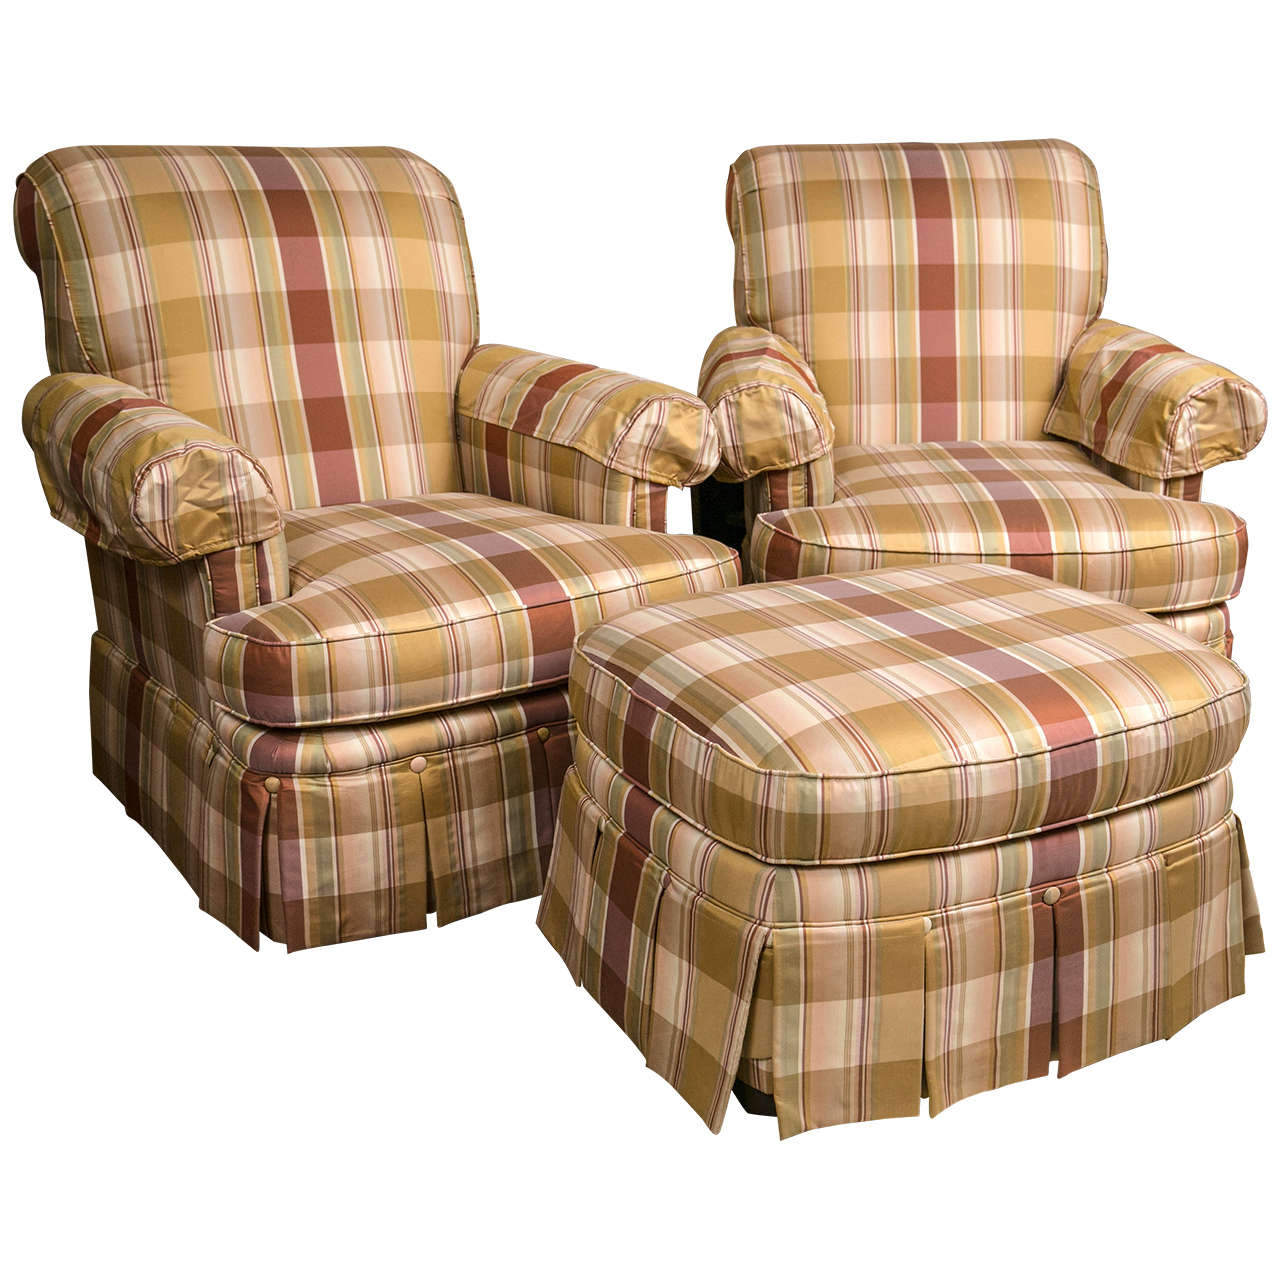 Custom Club Chairs pair of custom quality silk upholstered plaid club chairs and